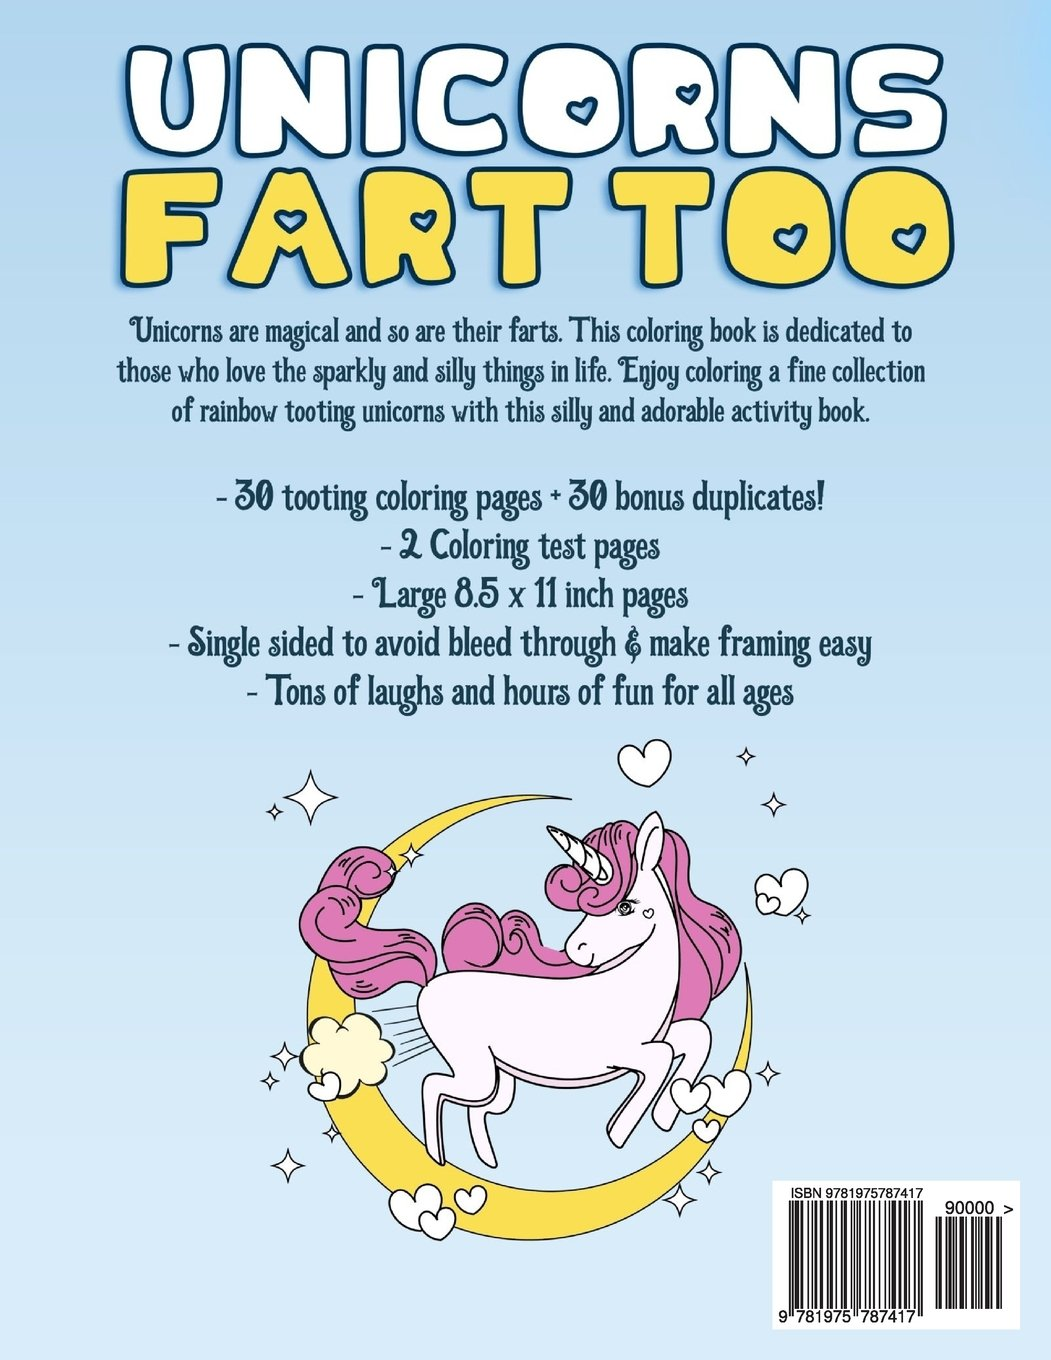 Amazon.com: Unicorns Fart Too: A Coloring Book Revealing the ...